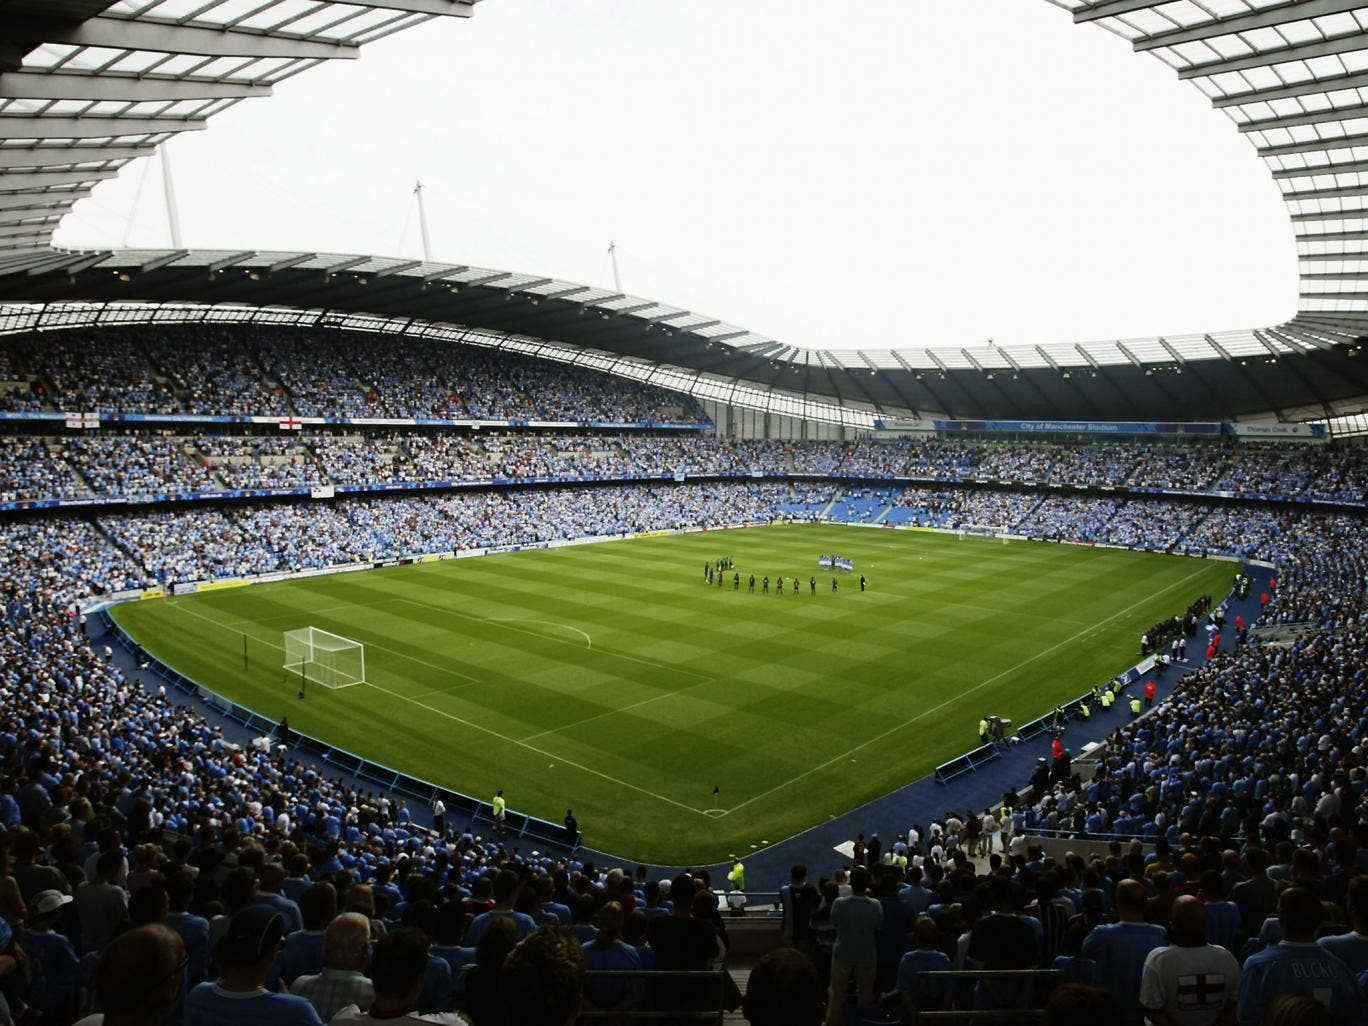 Manchester City want to  increase the capacity of the Etihad Stadium to 61,000